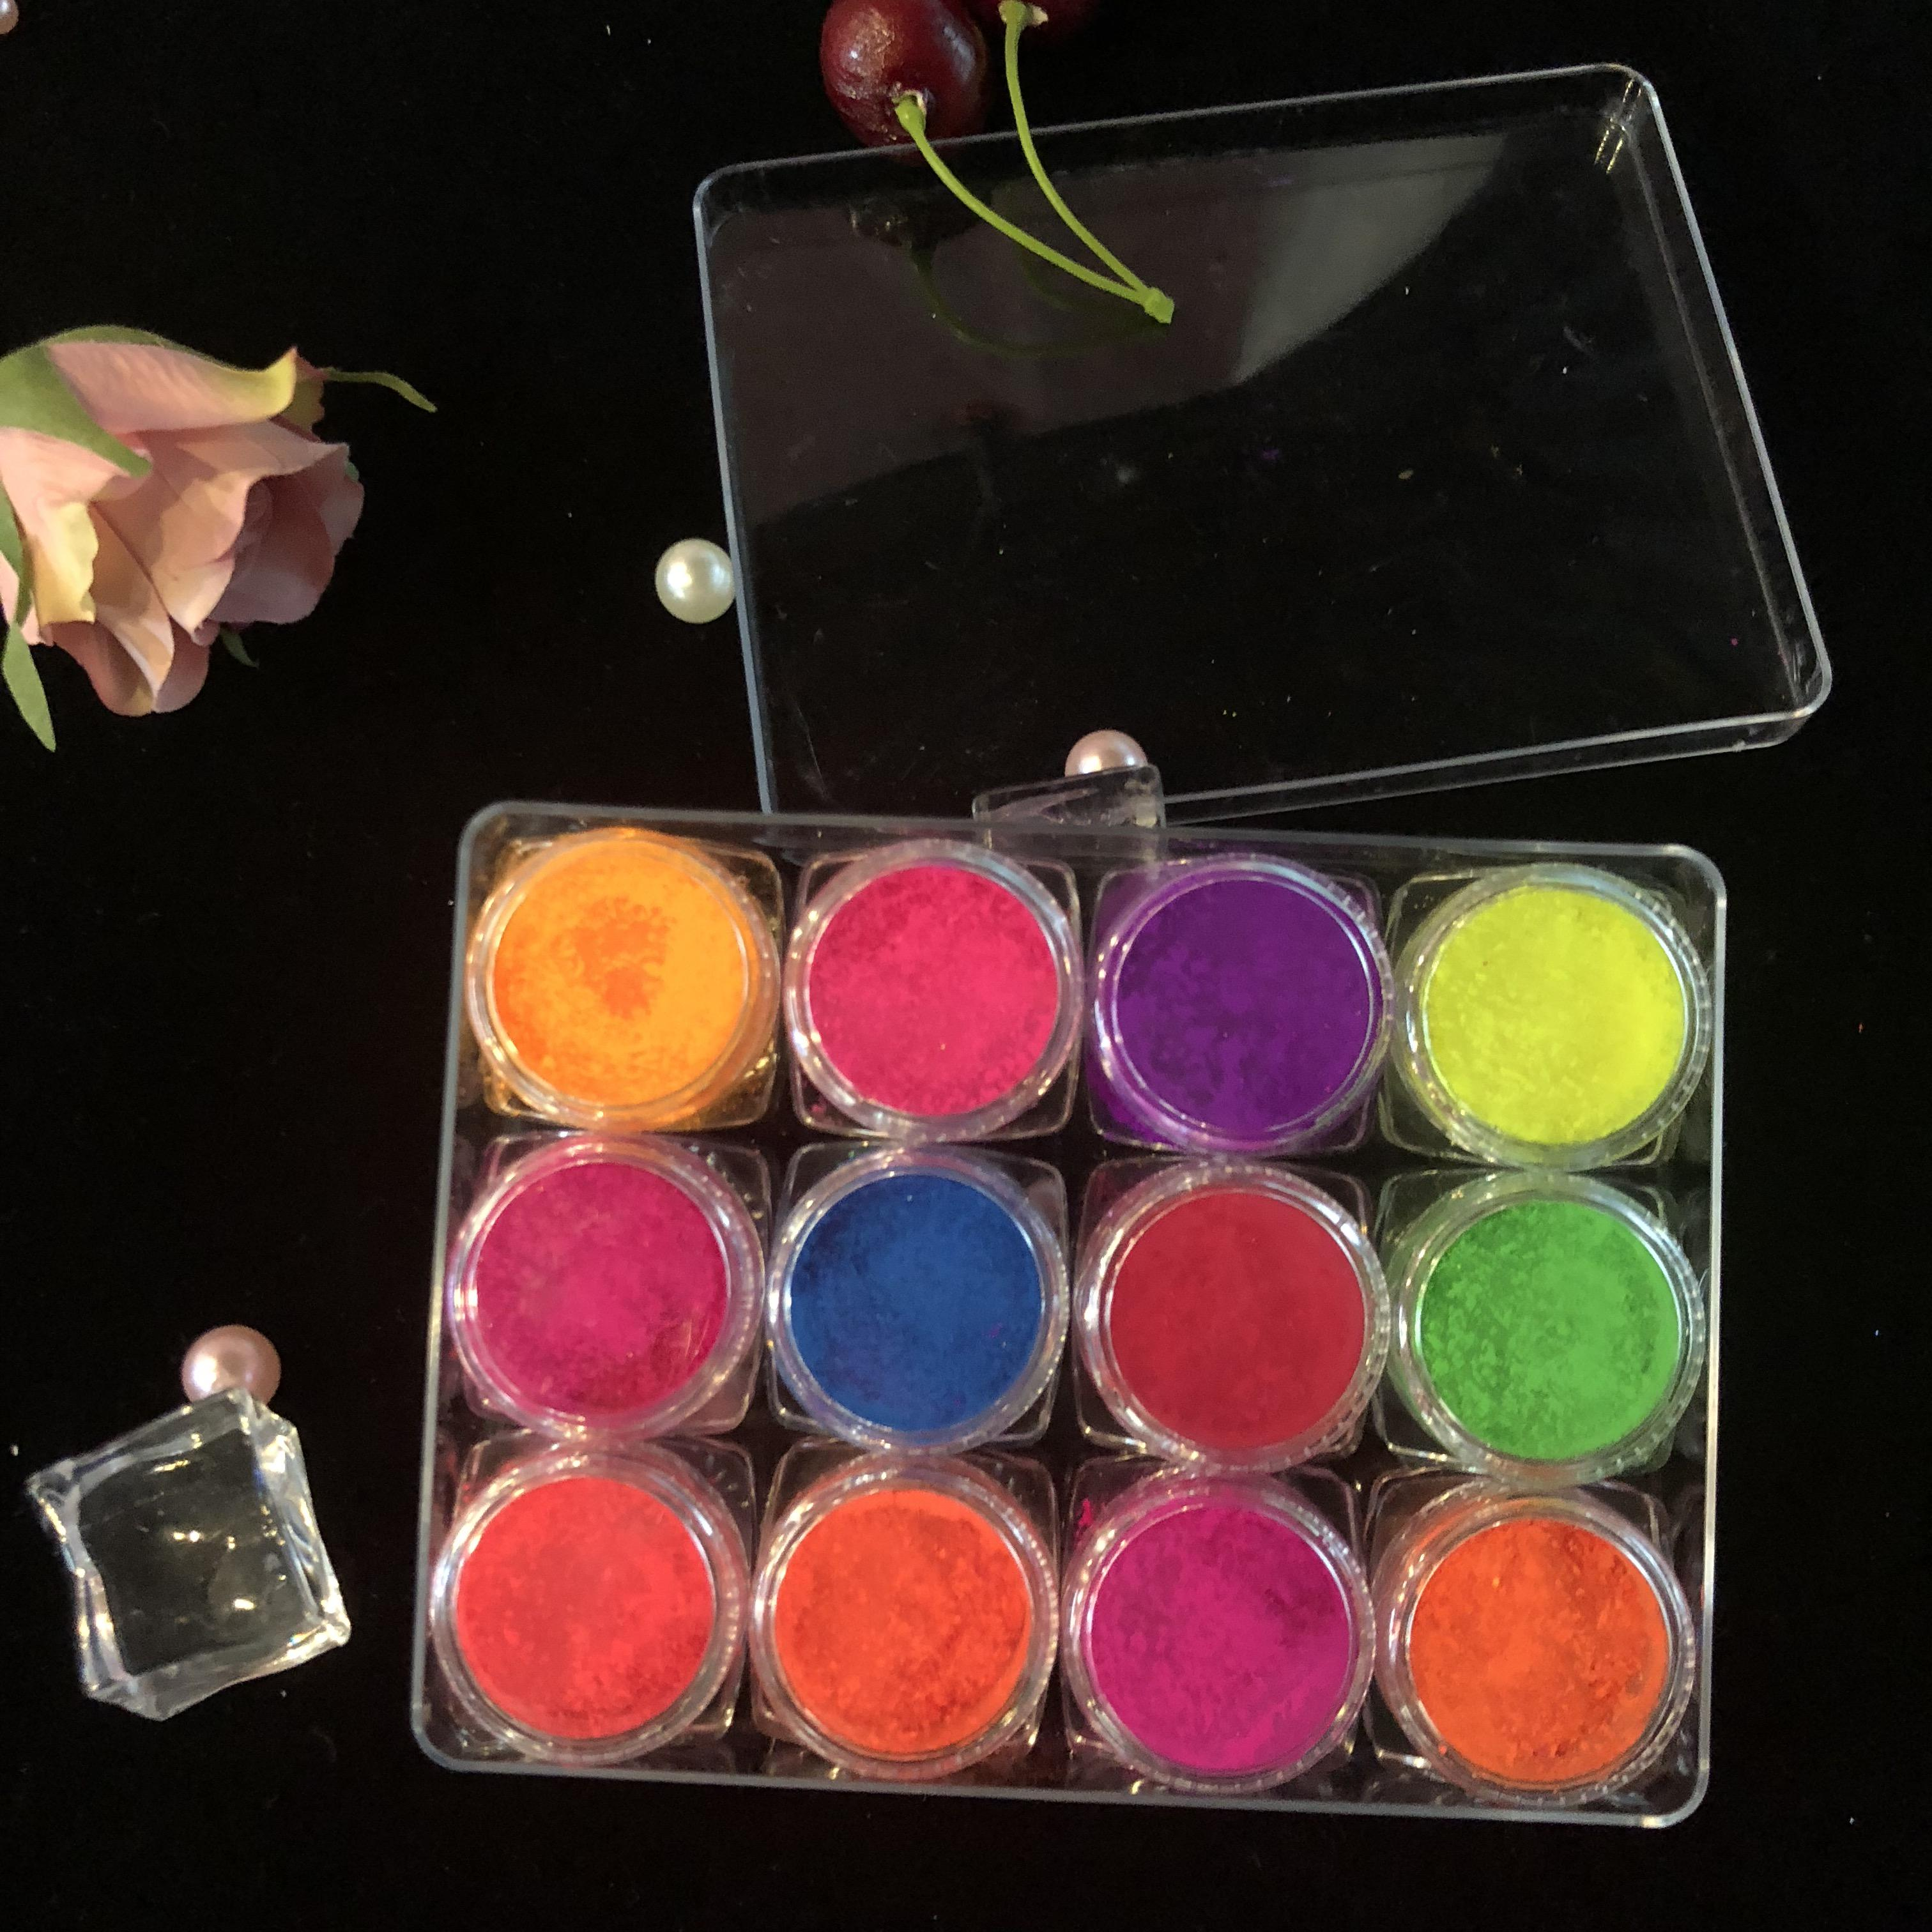 Groothandel Private Label 12 Kleur Oogschaduw Pigment Losse Poeder Make-Up Set